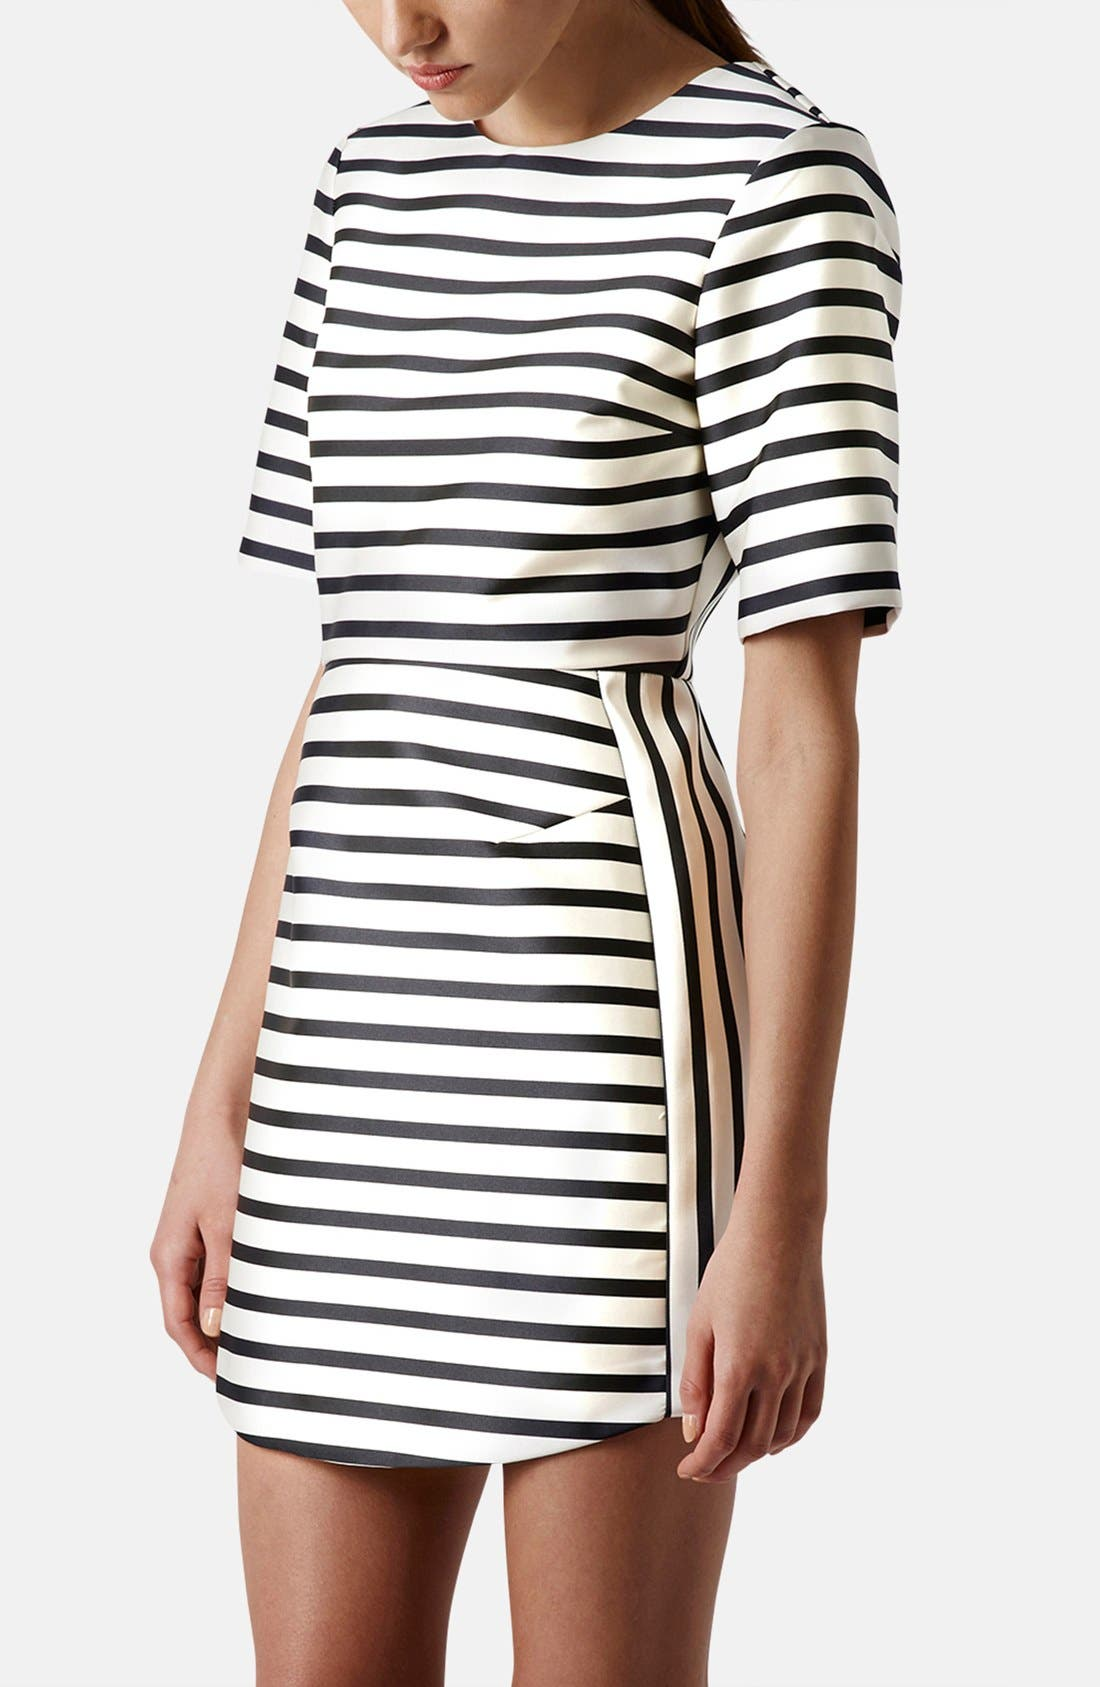 Alternate Image 1 Selected - Topshop Stripe Satin Dress